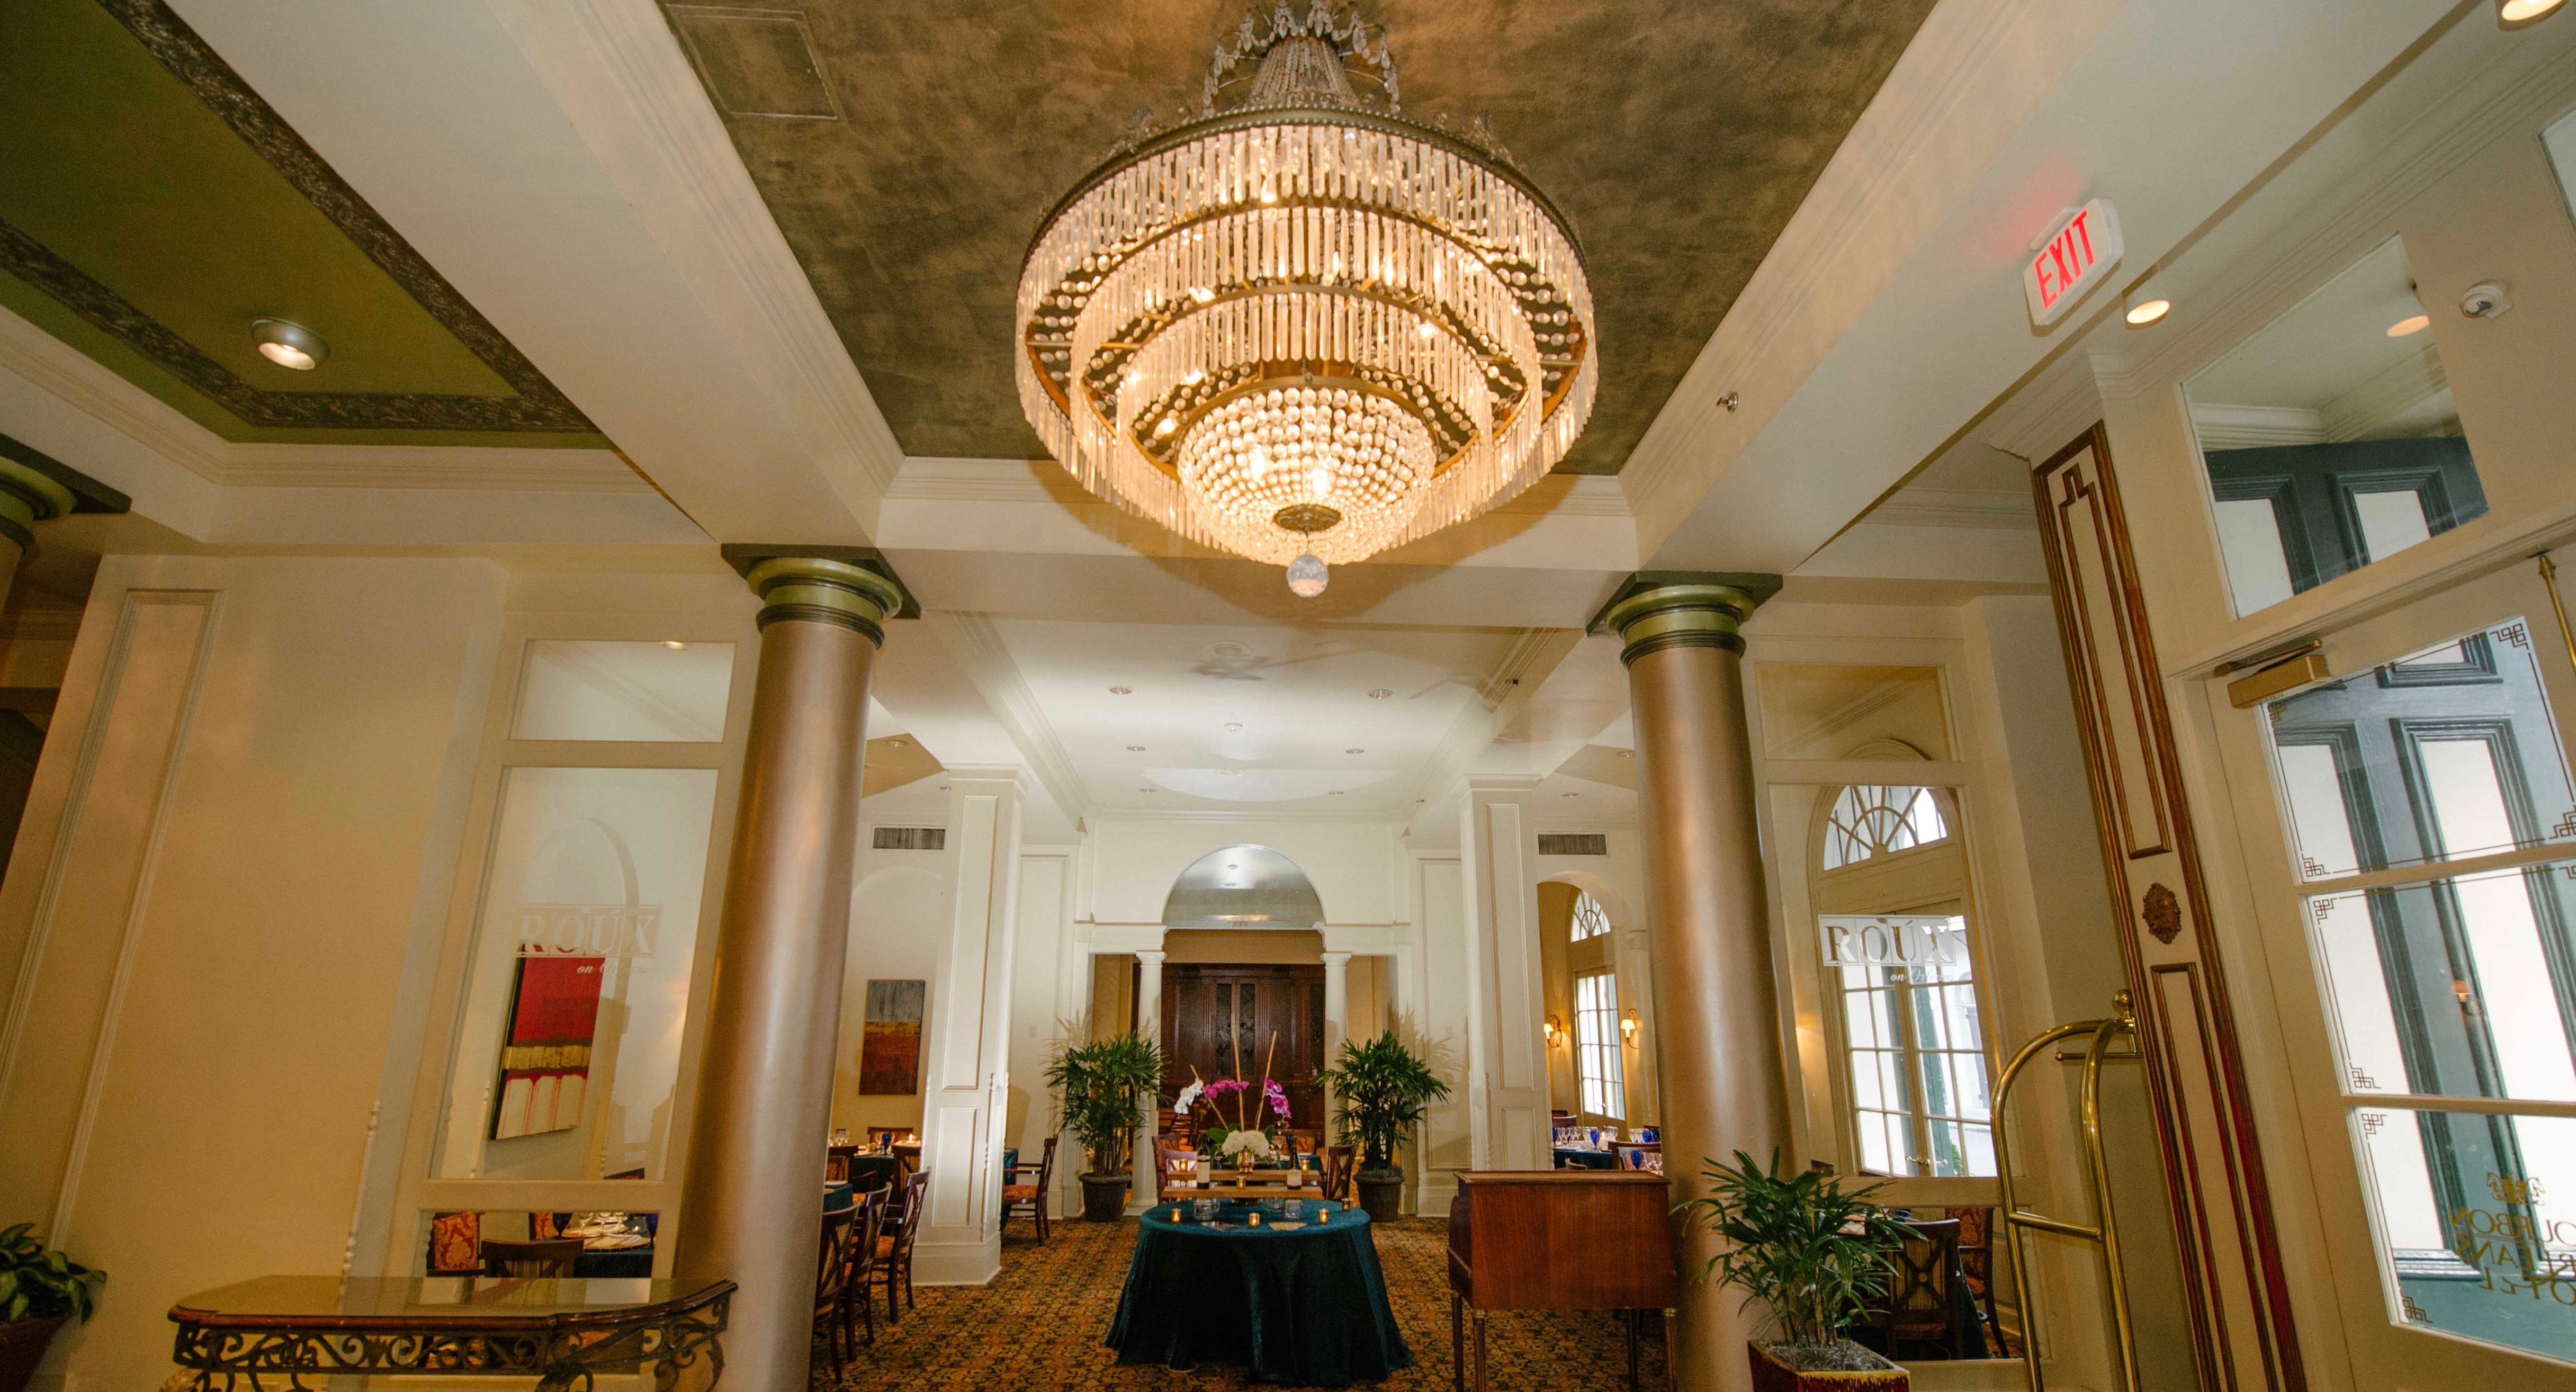 Are you planning to visit the prestigious French Quarter, Bourbon Orleans Hotel, haunted hotel, or one of the best places to be in Louisiana?